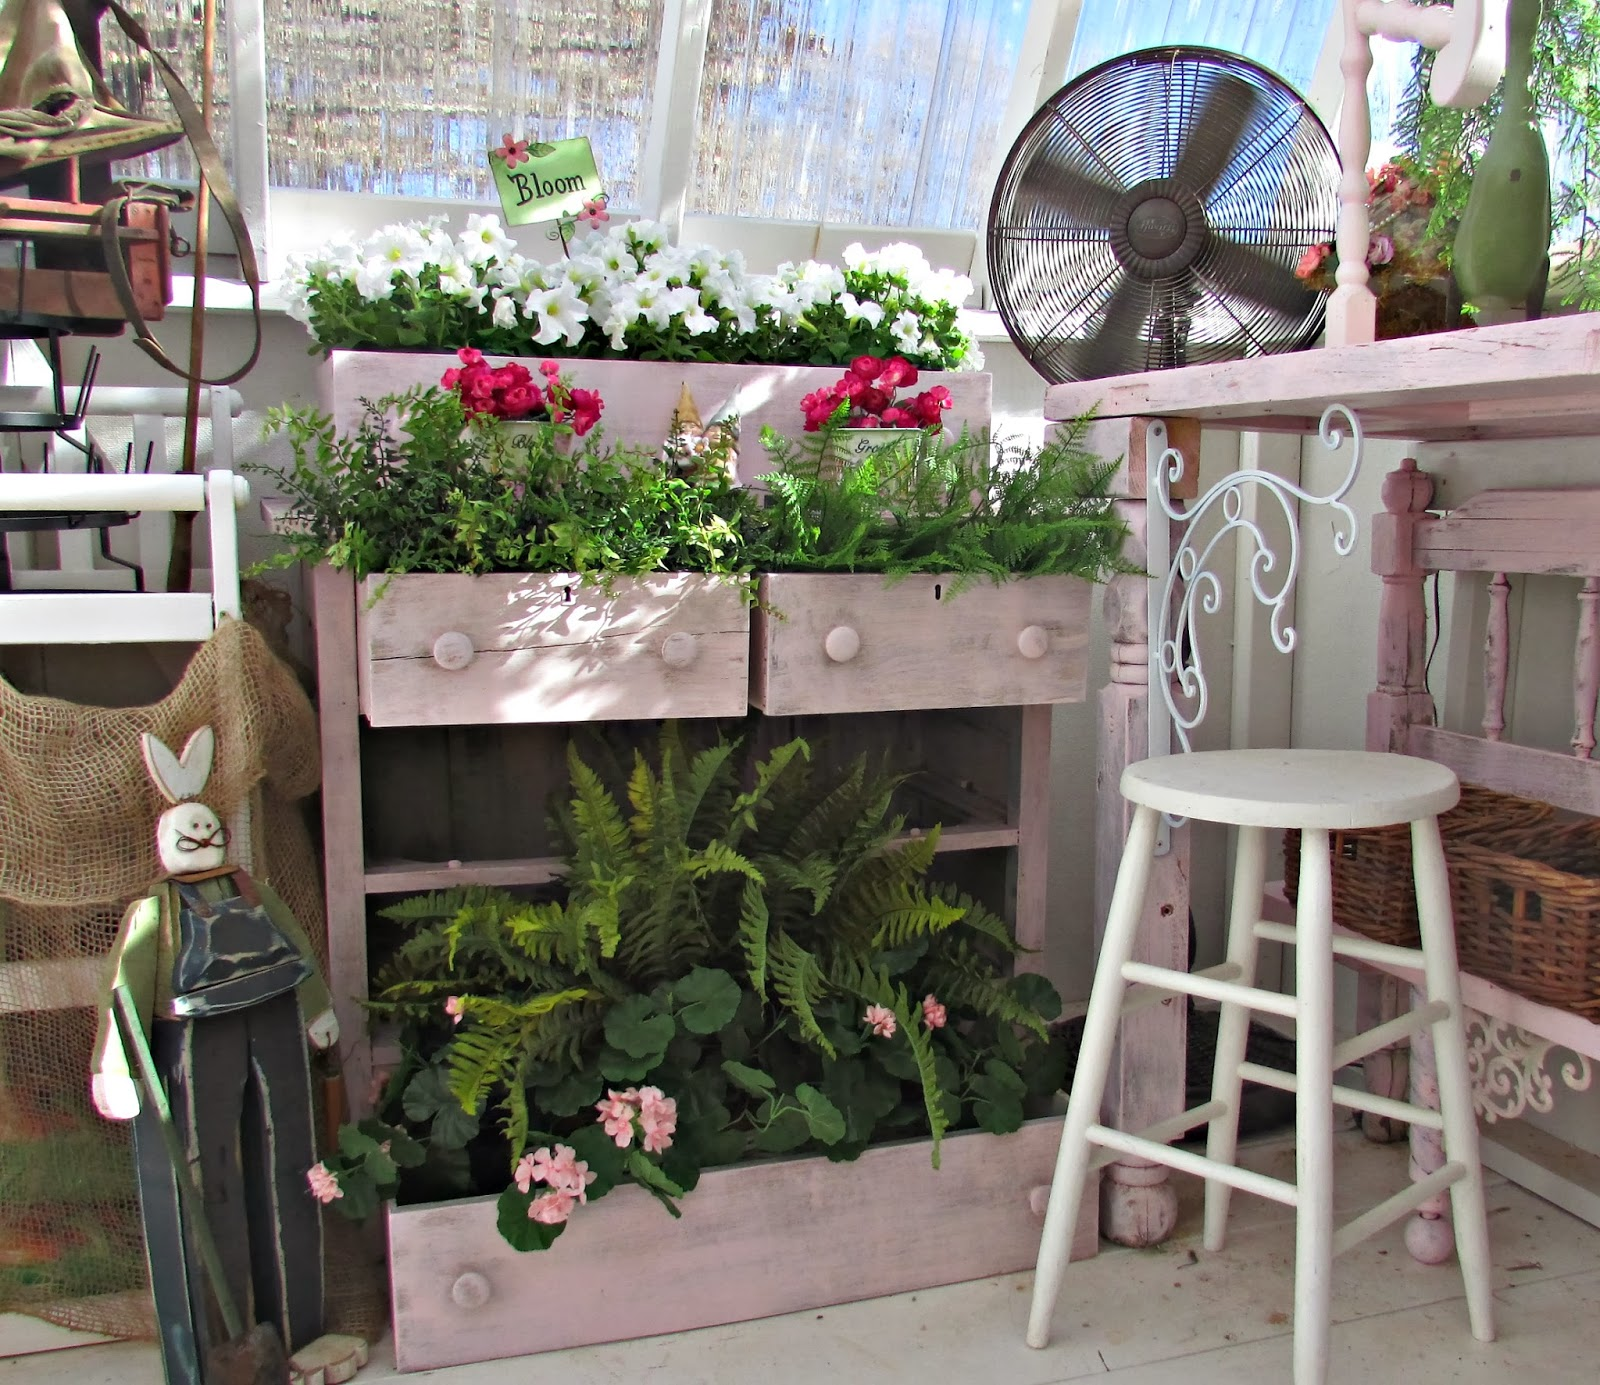 Repurposed chest of drawers planter by Penny's Vintage Home featured on FunkyJunkInteriors.net